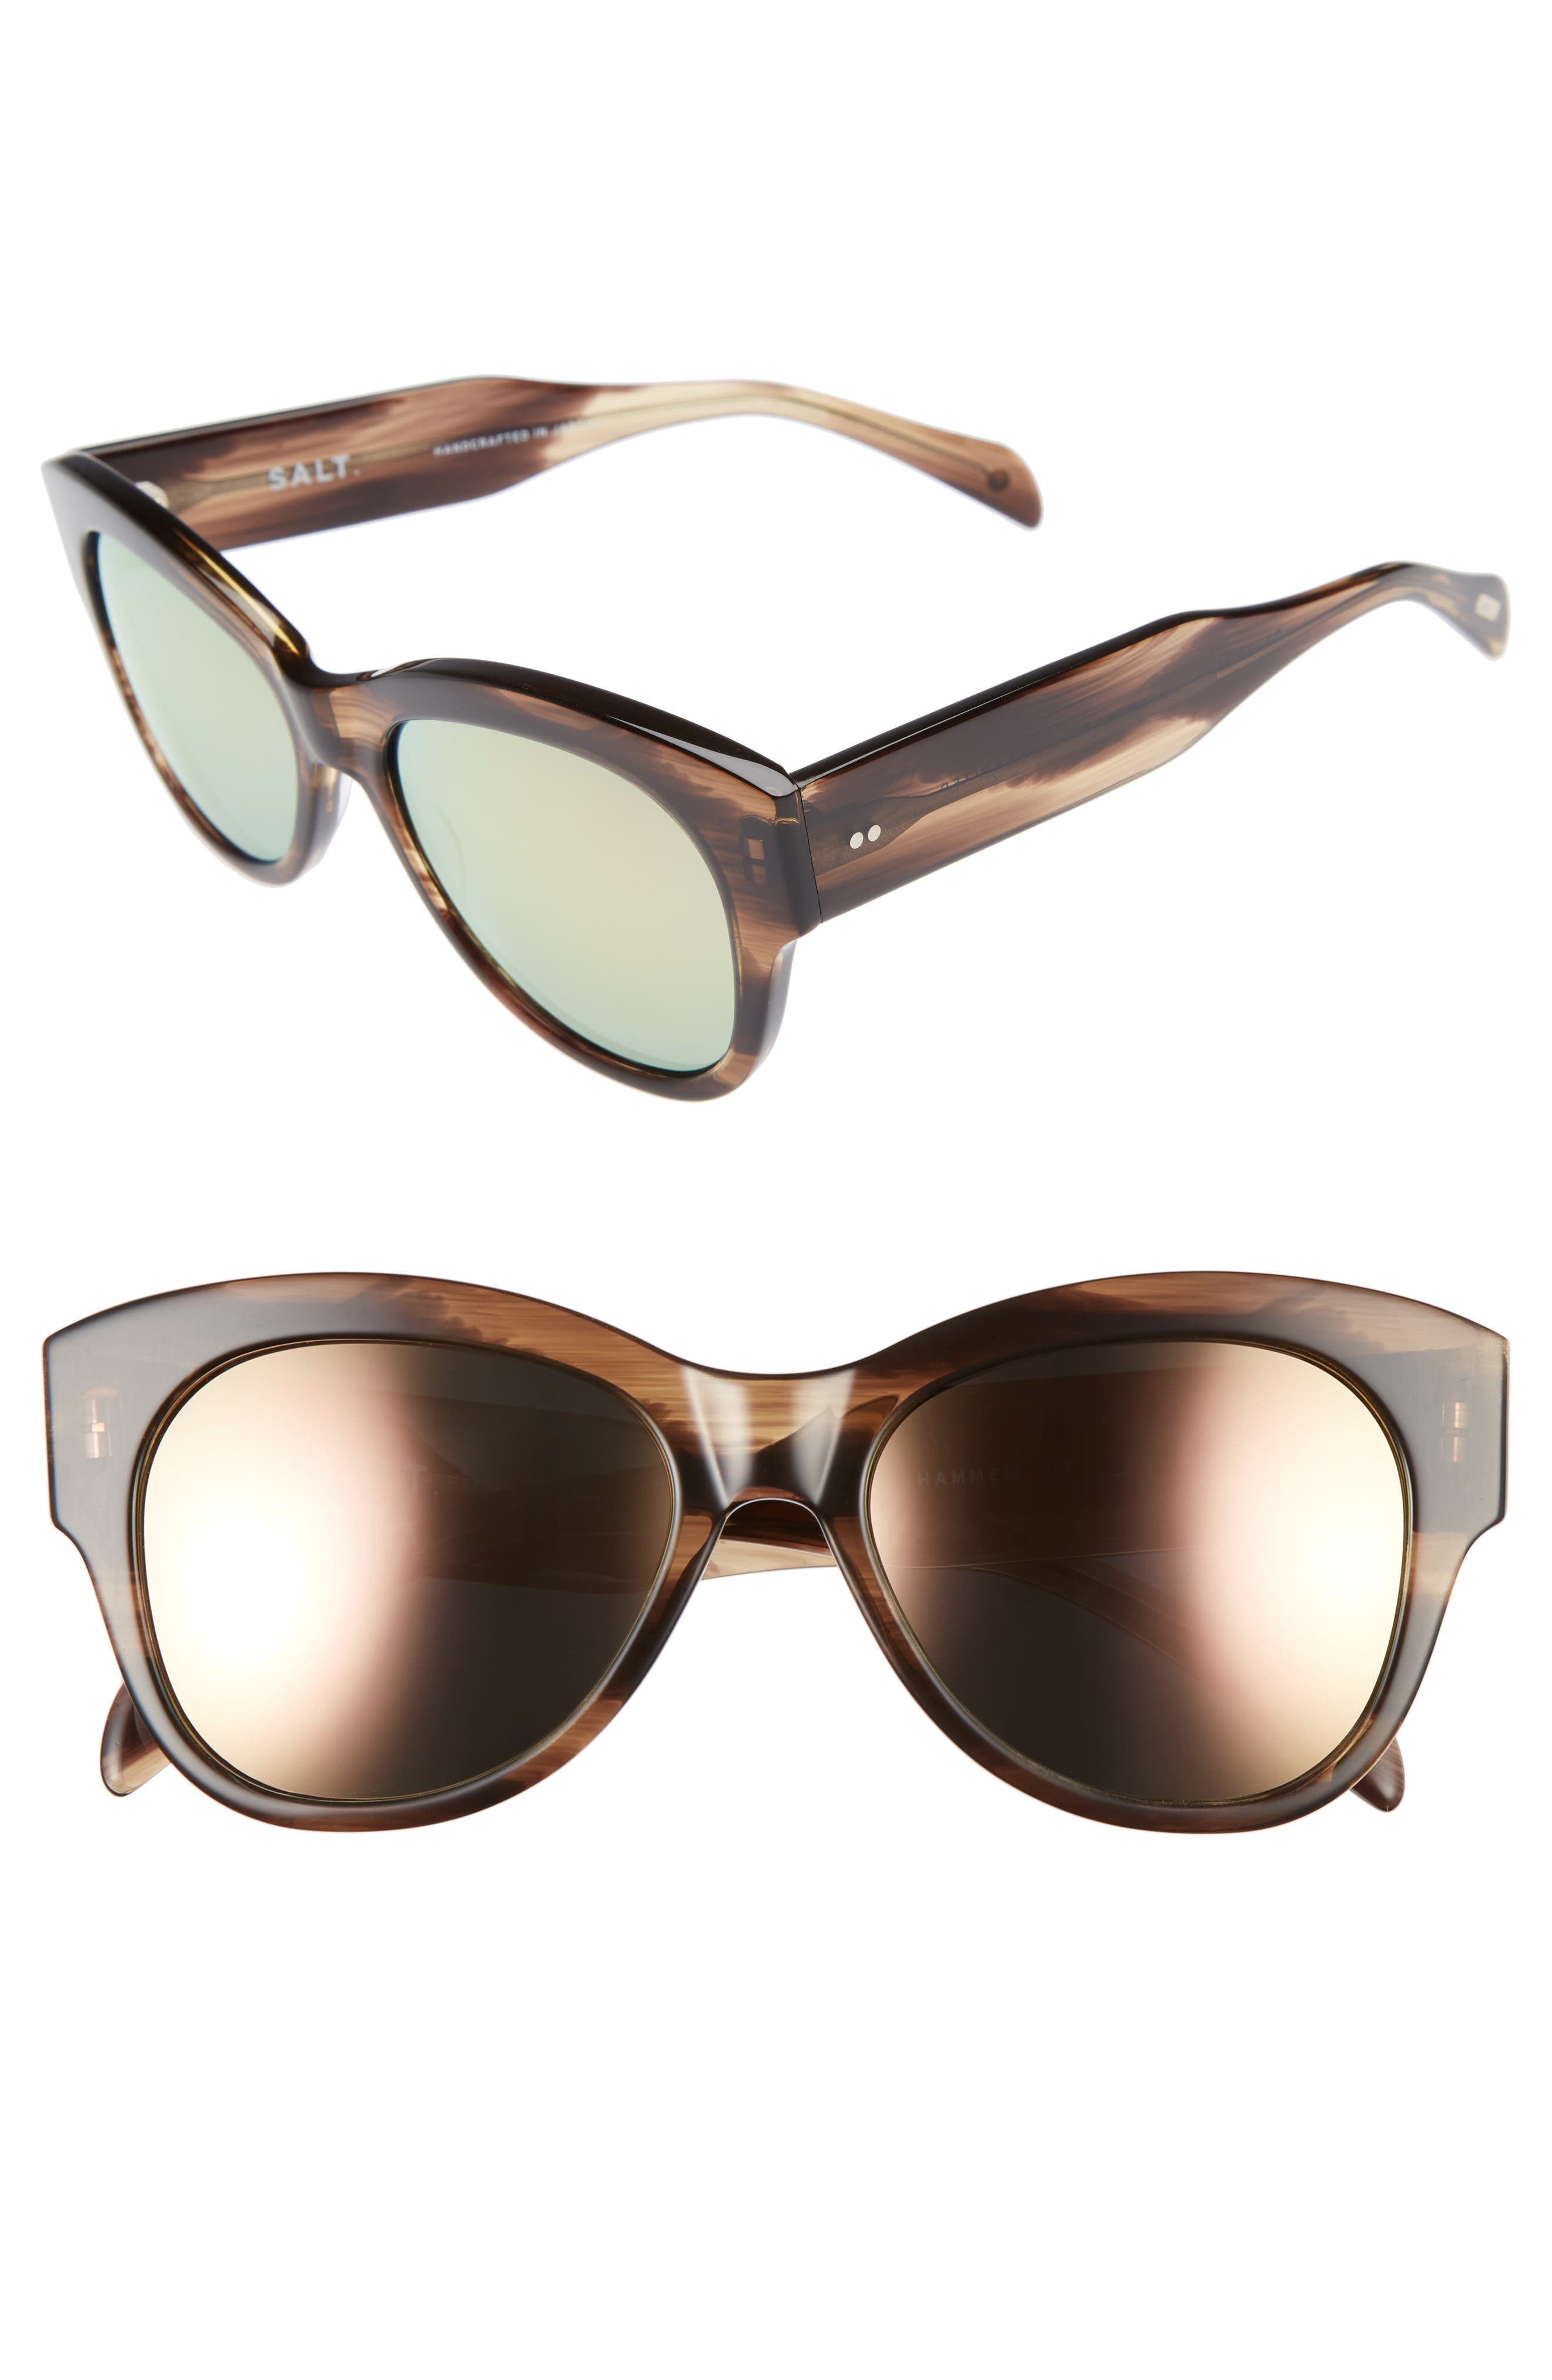 SALT Hammen 54mm Polarized Cat Eye Sunglasses